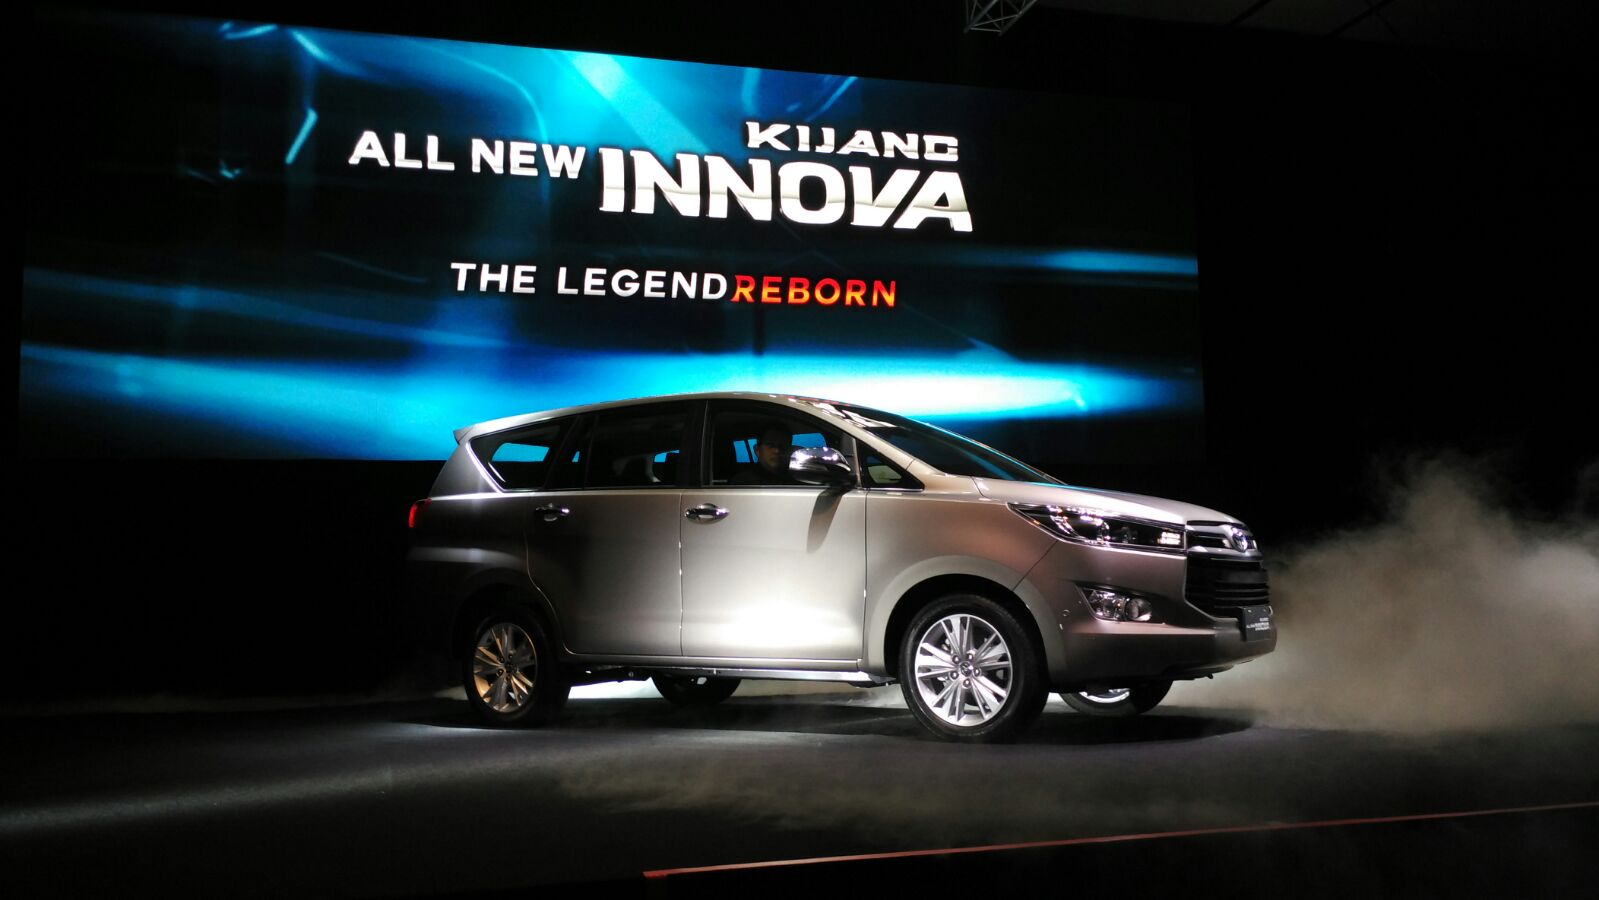 all new toyota kijang innova 2019 grand avanza 2017 modifikasi 2016 diluncurkan di indonesia